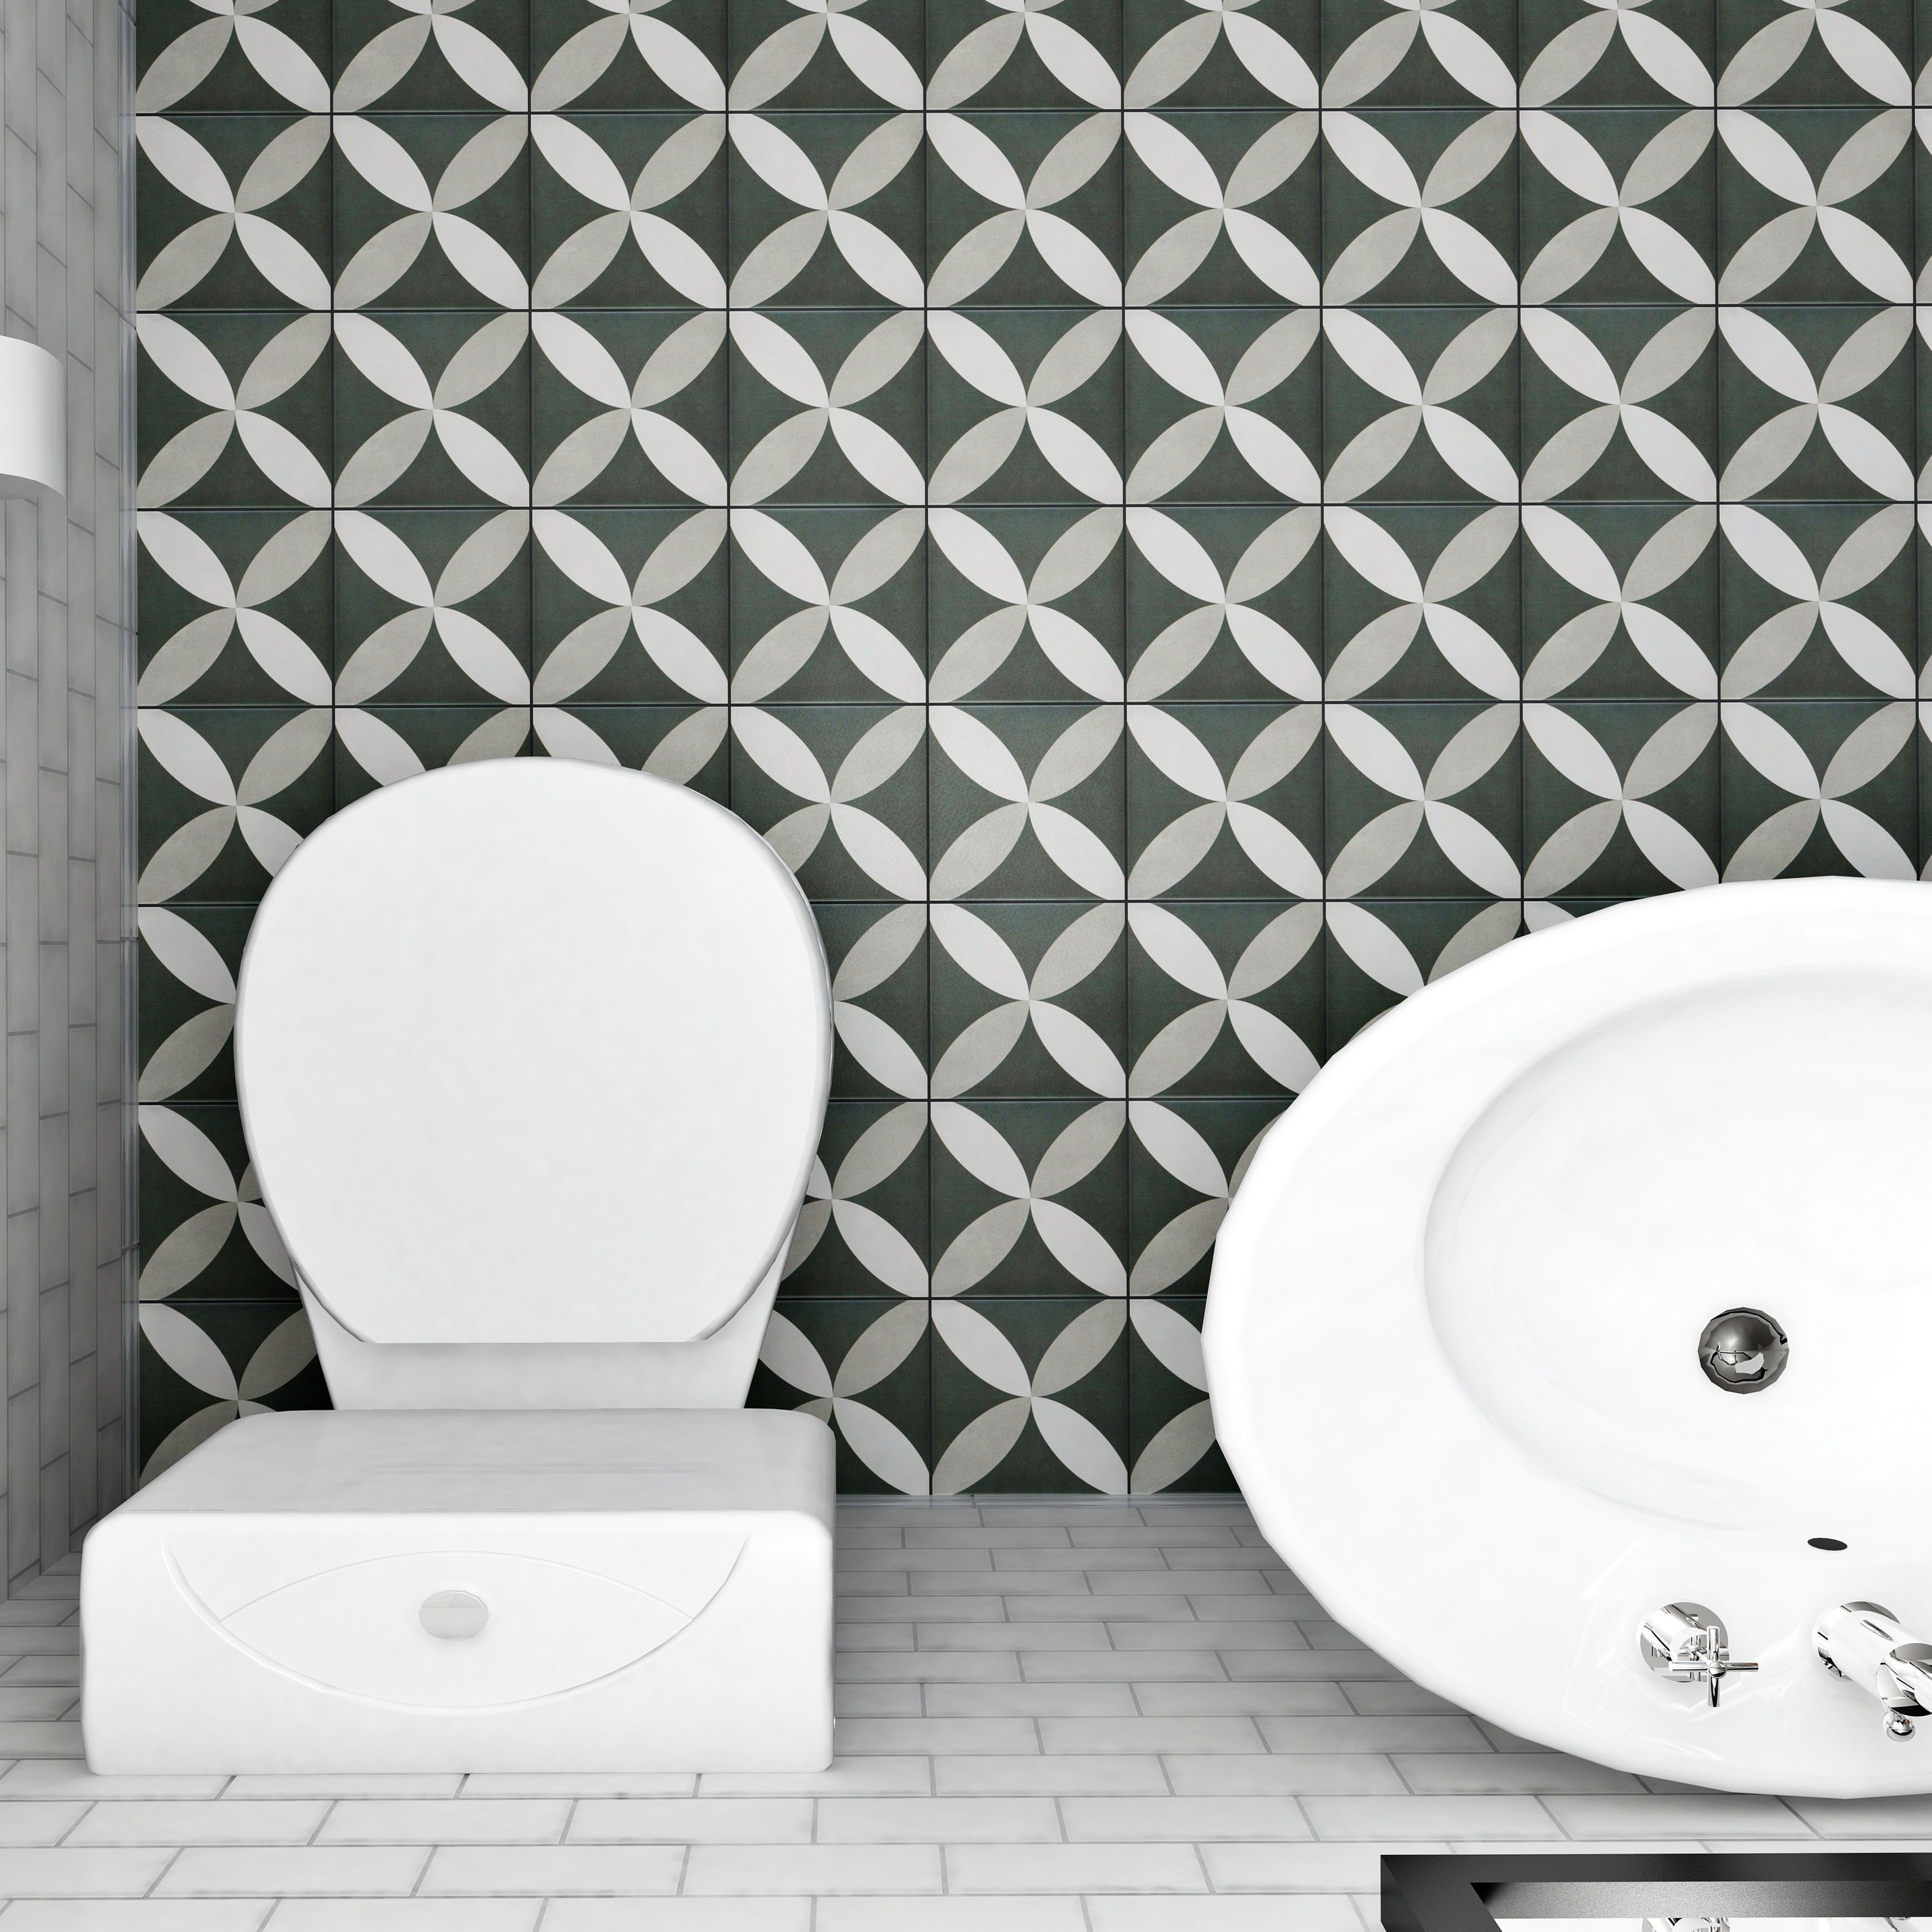 Somertile 775x775 inch thirties petal ceramic floor and wall somertile 775x775 inch thirties petal ceramic floor and wall tile case of 25 free shipping on orders over 45 overstock 16357612 dailygadgetfo Image collections